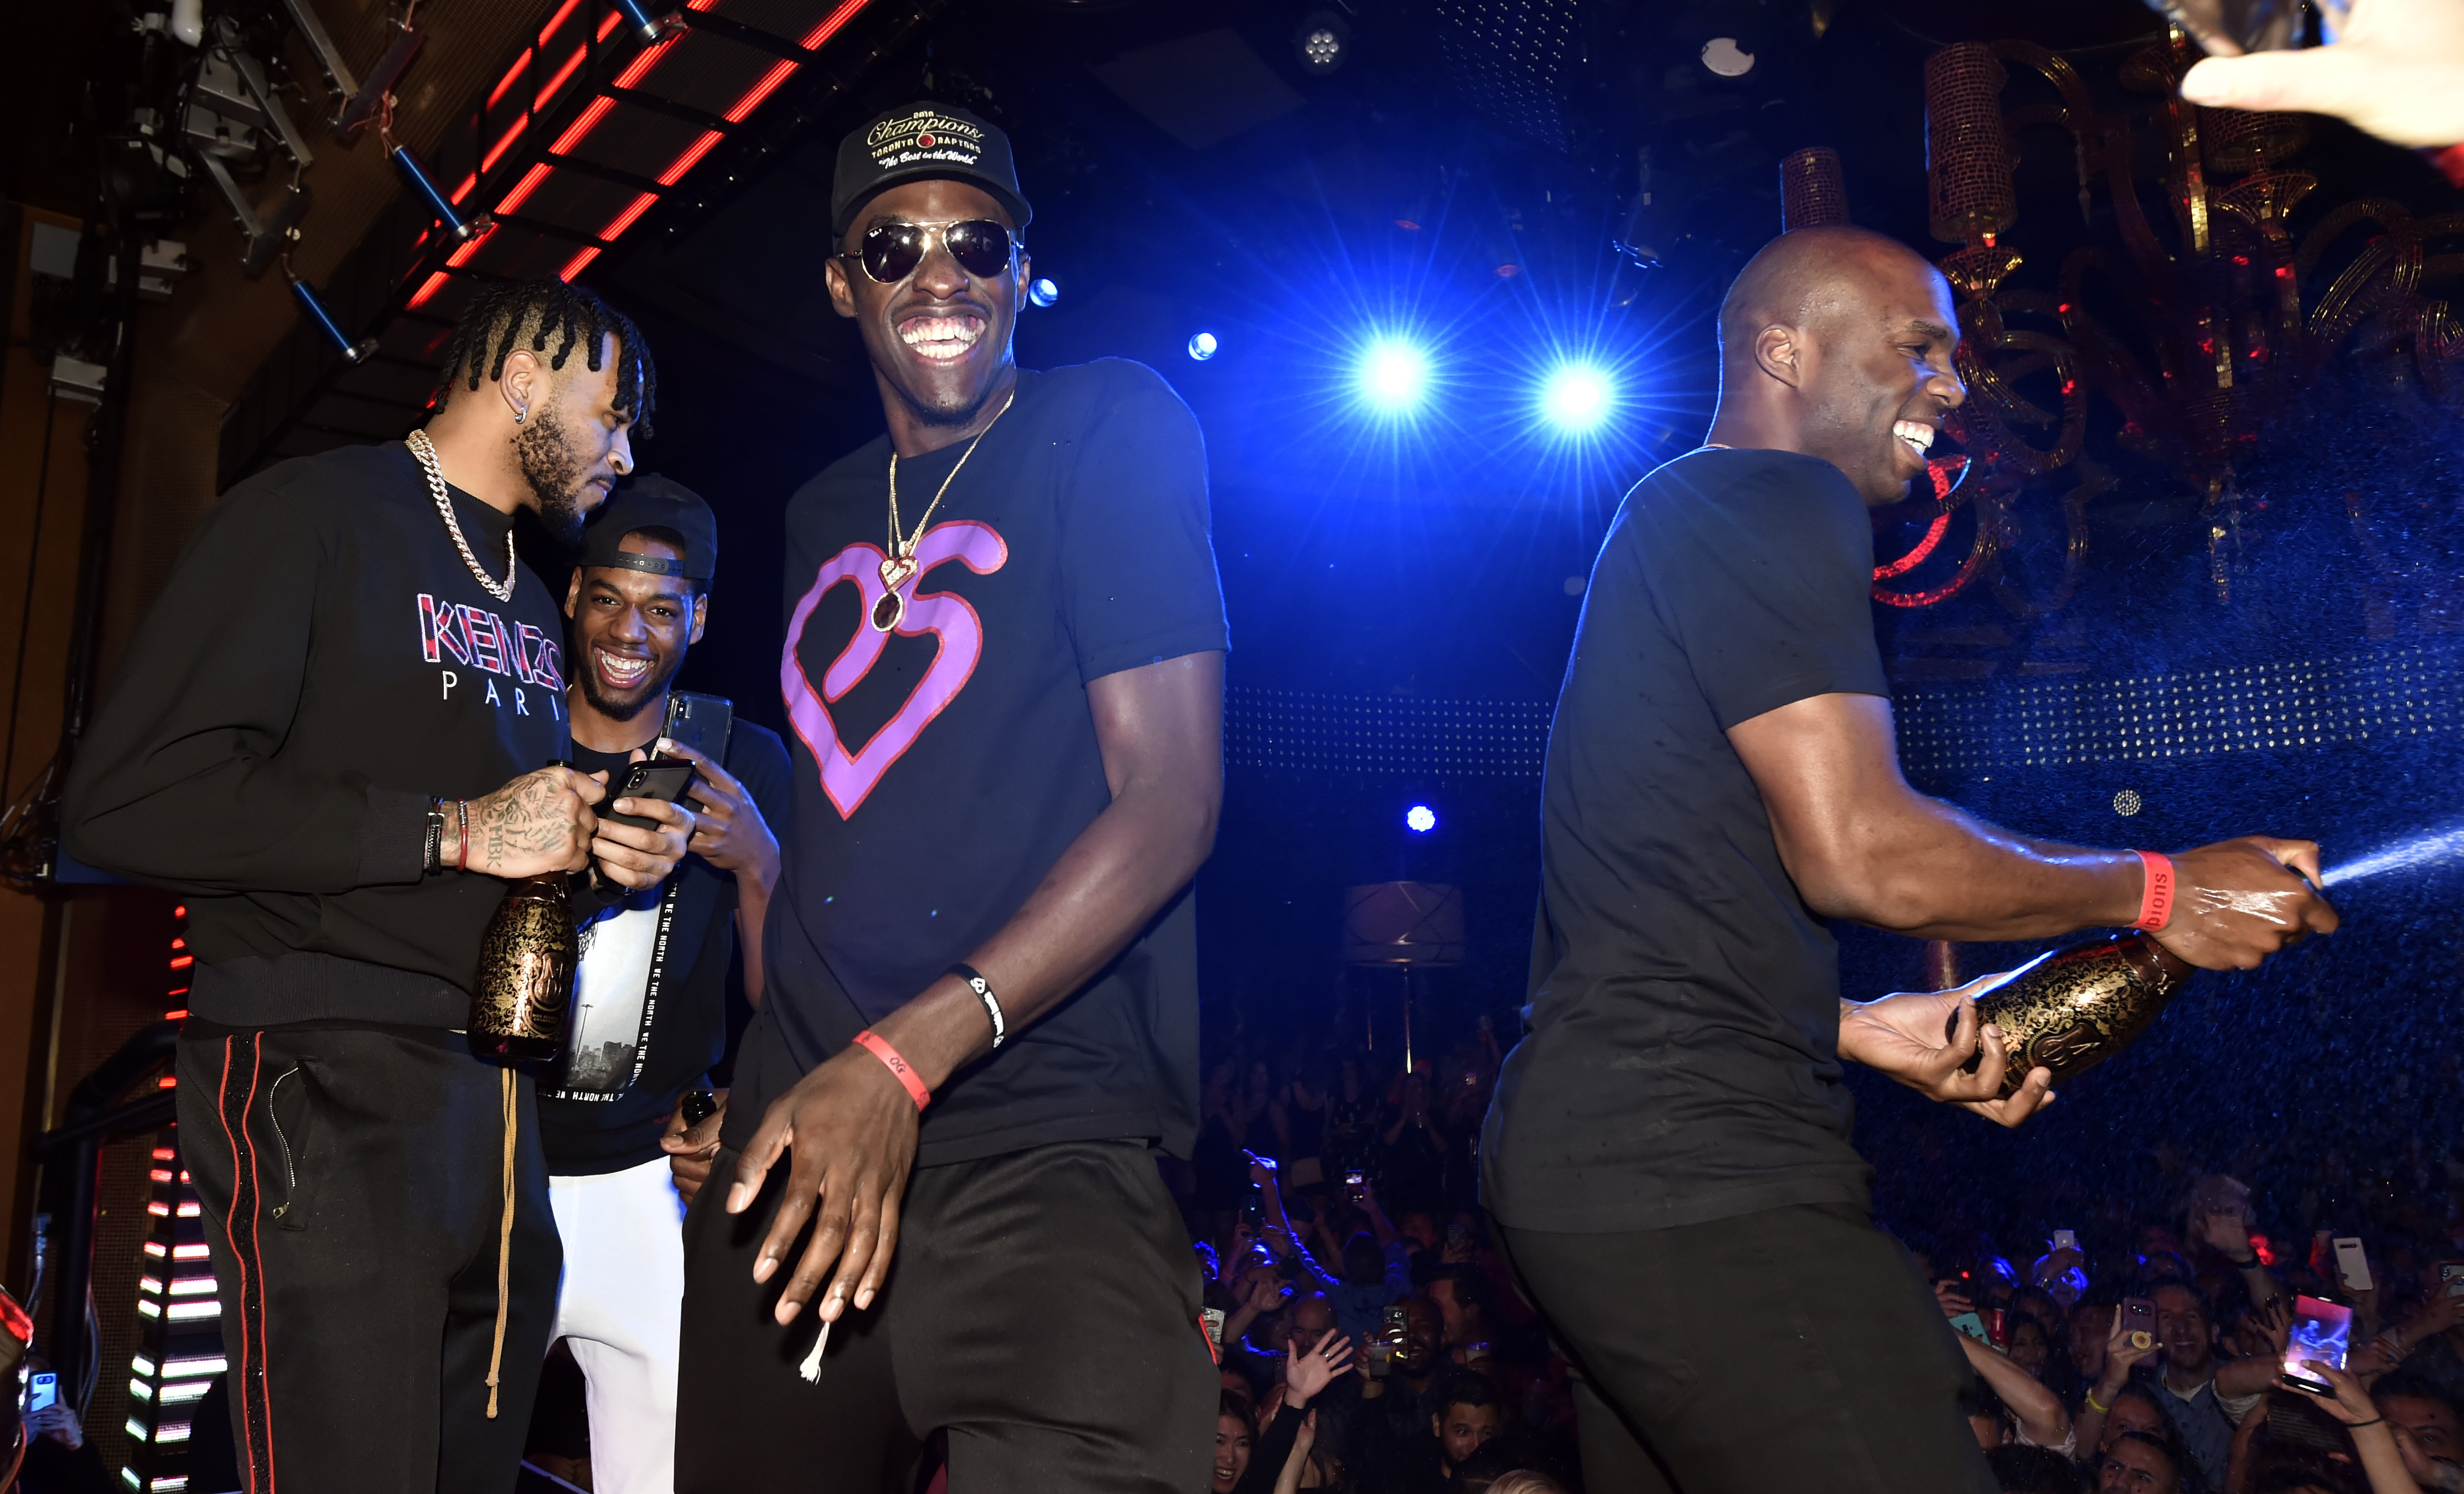 How The Toronto Raptors and St. Louis Blues Celebrated Their Championships in Las Vegas